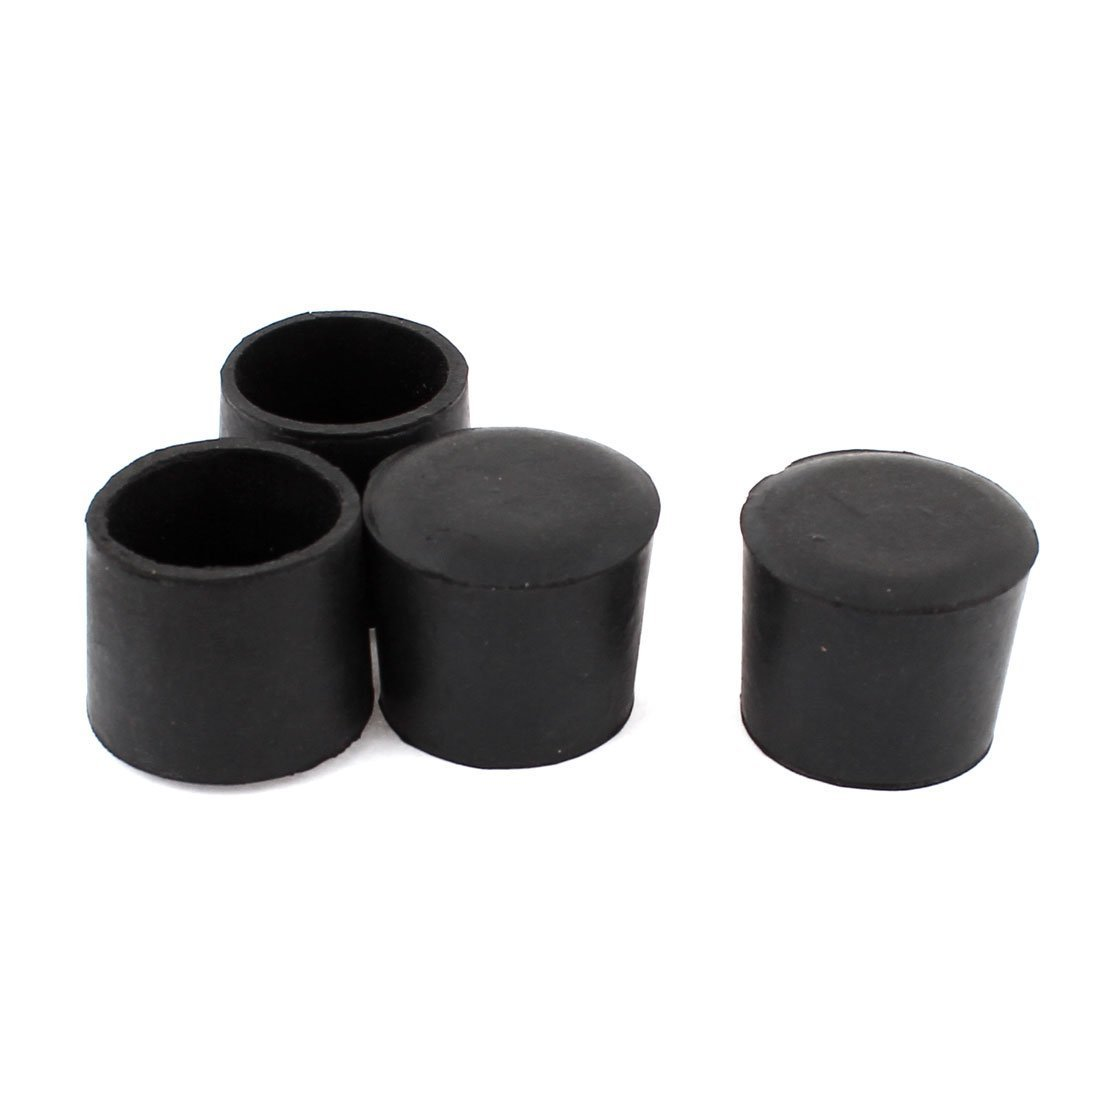 Hot Sale Furniture, Protectors end cap, round 38 mm, 4 pieces